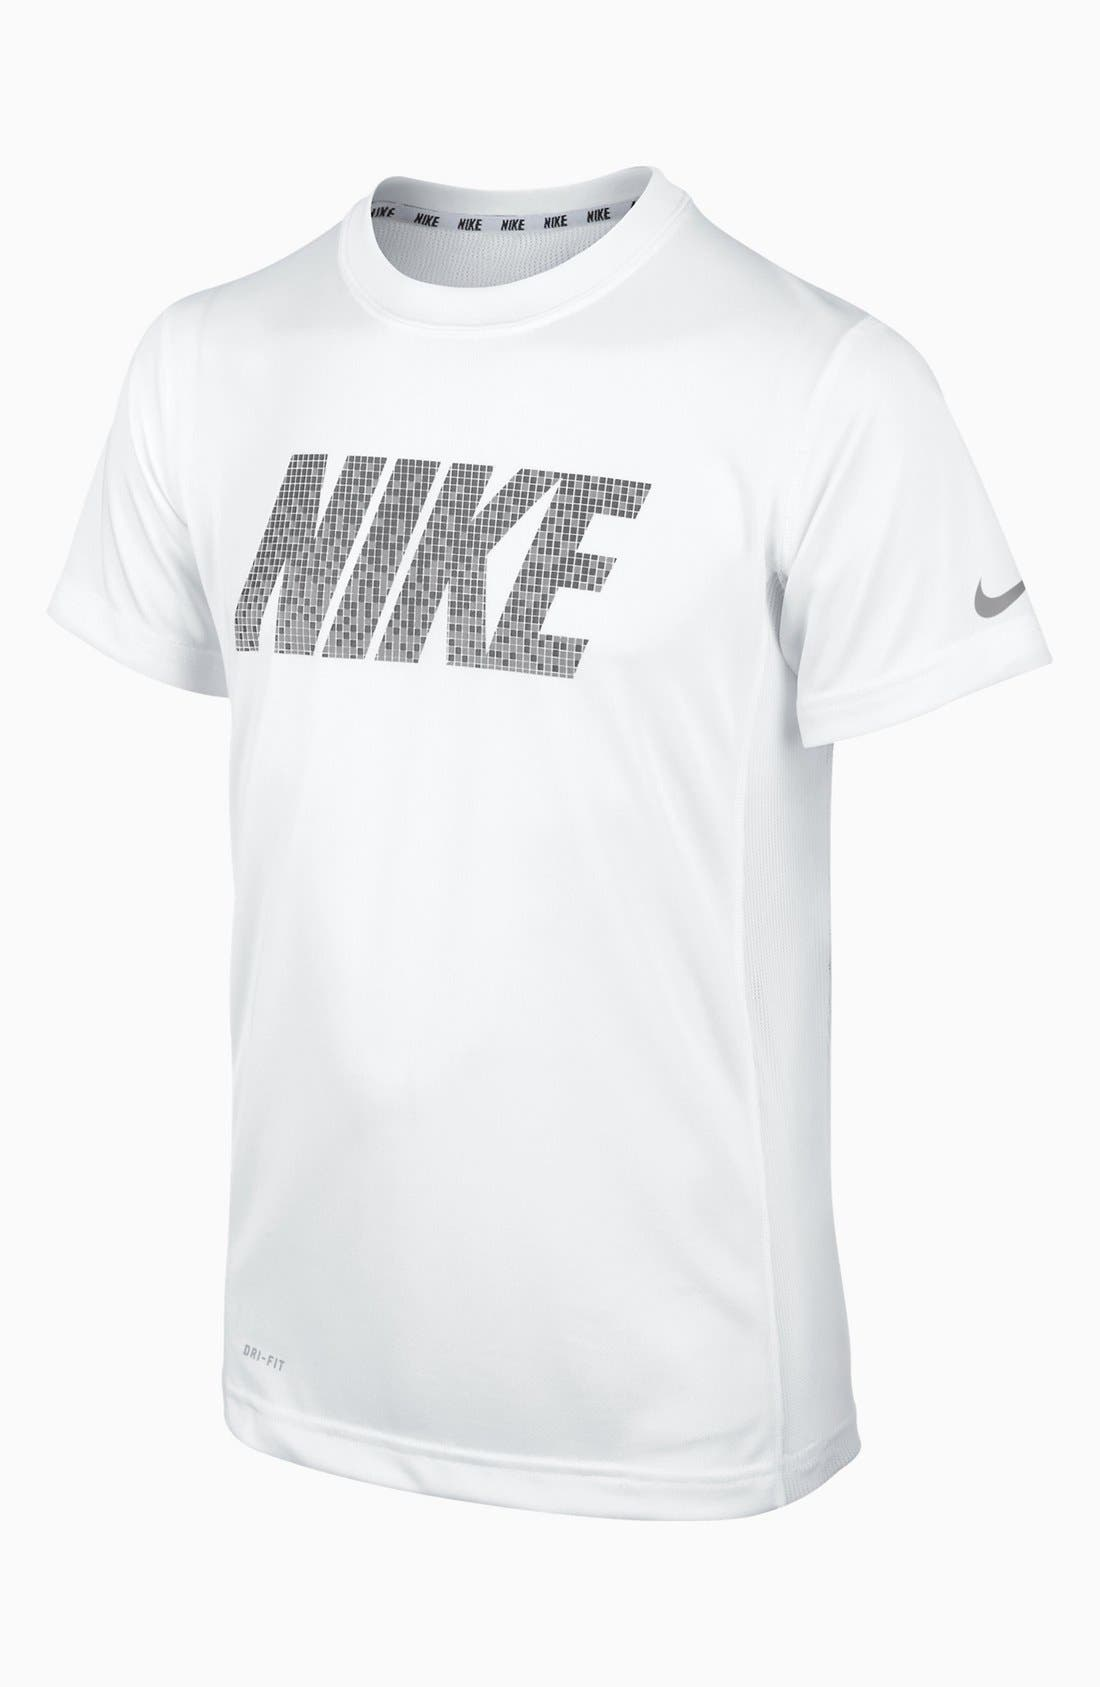 Alternate Image 1 Selected - Nike 'Speed' T-Shirt (Big Boys)